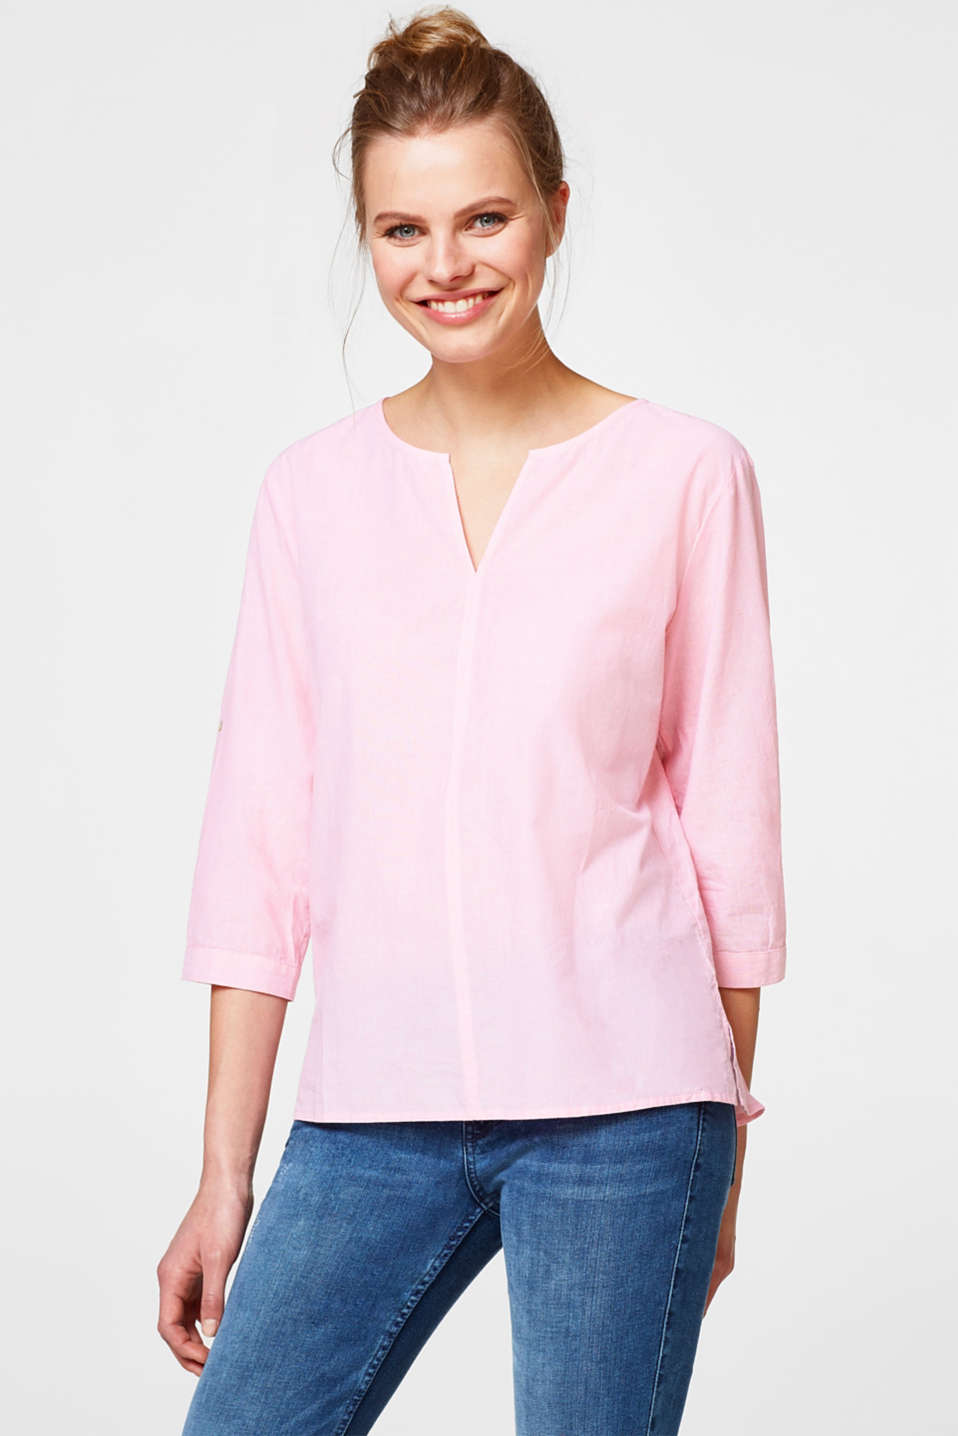 Esprit - Chambray blouse in 100% cotton